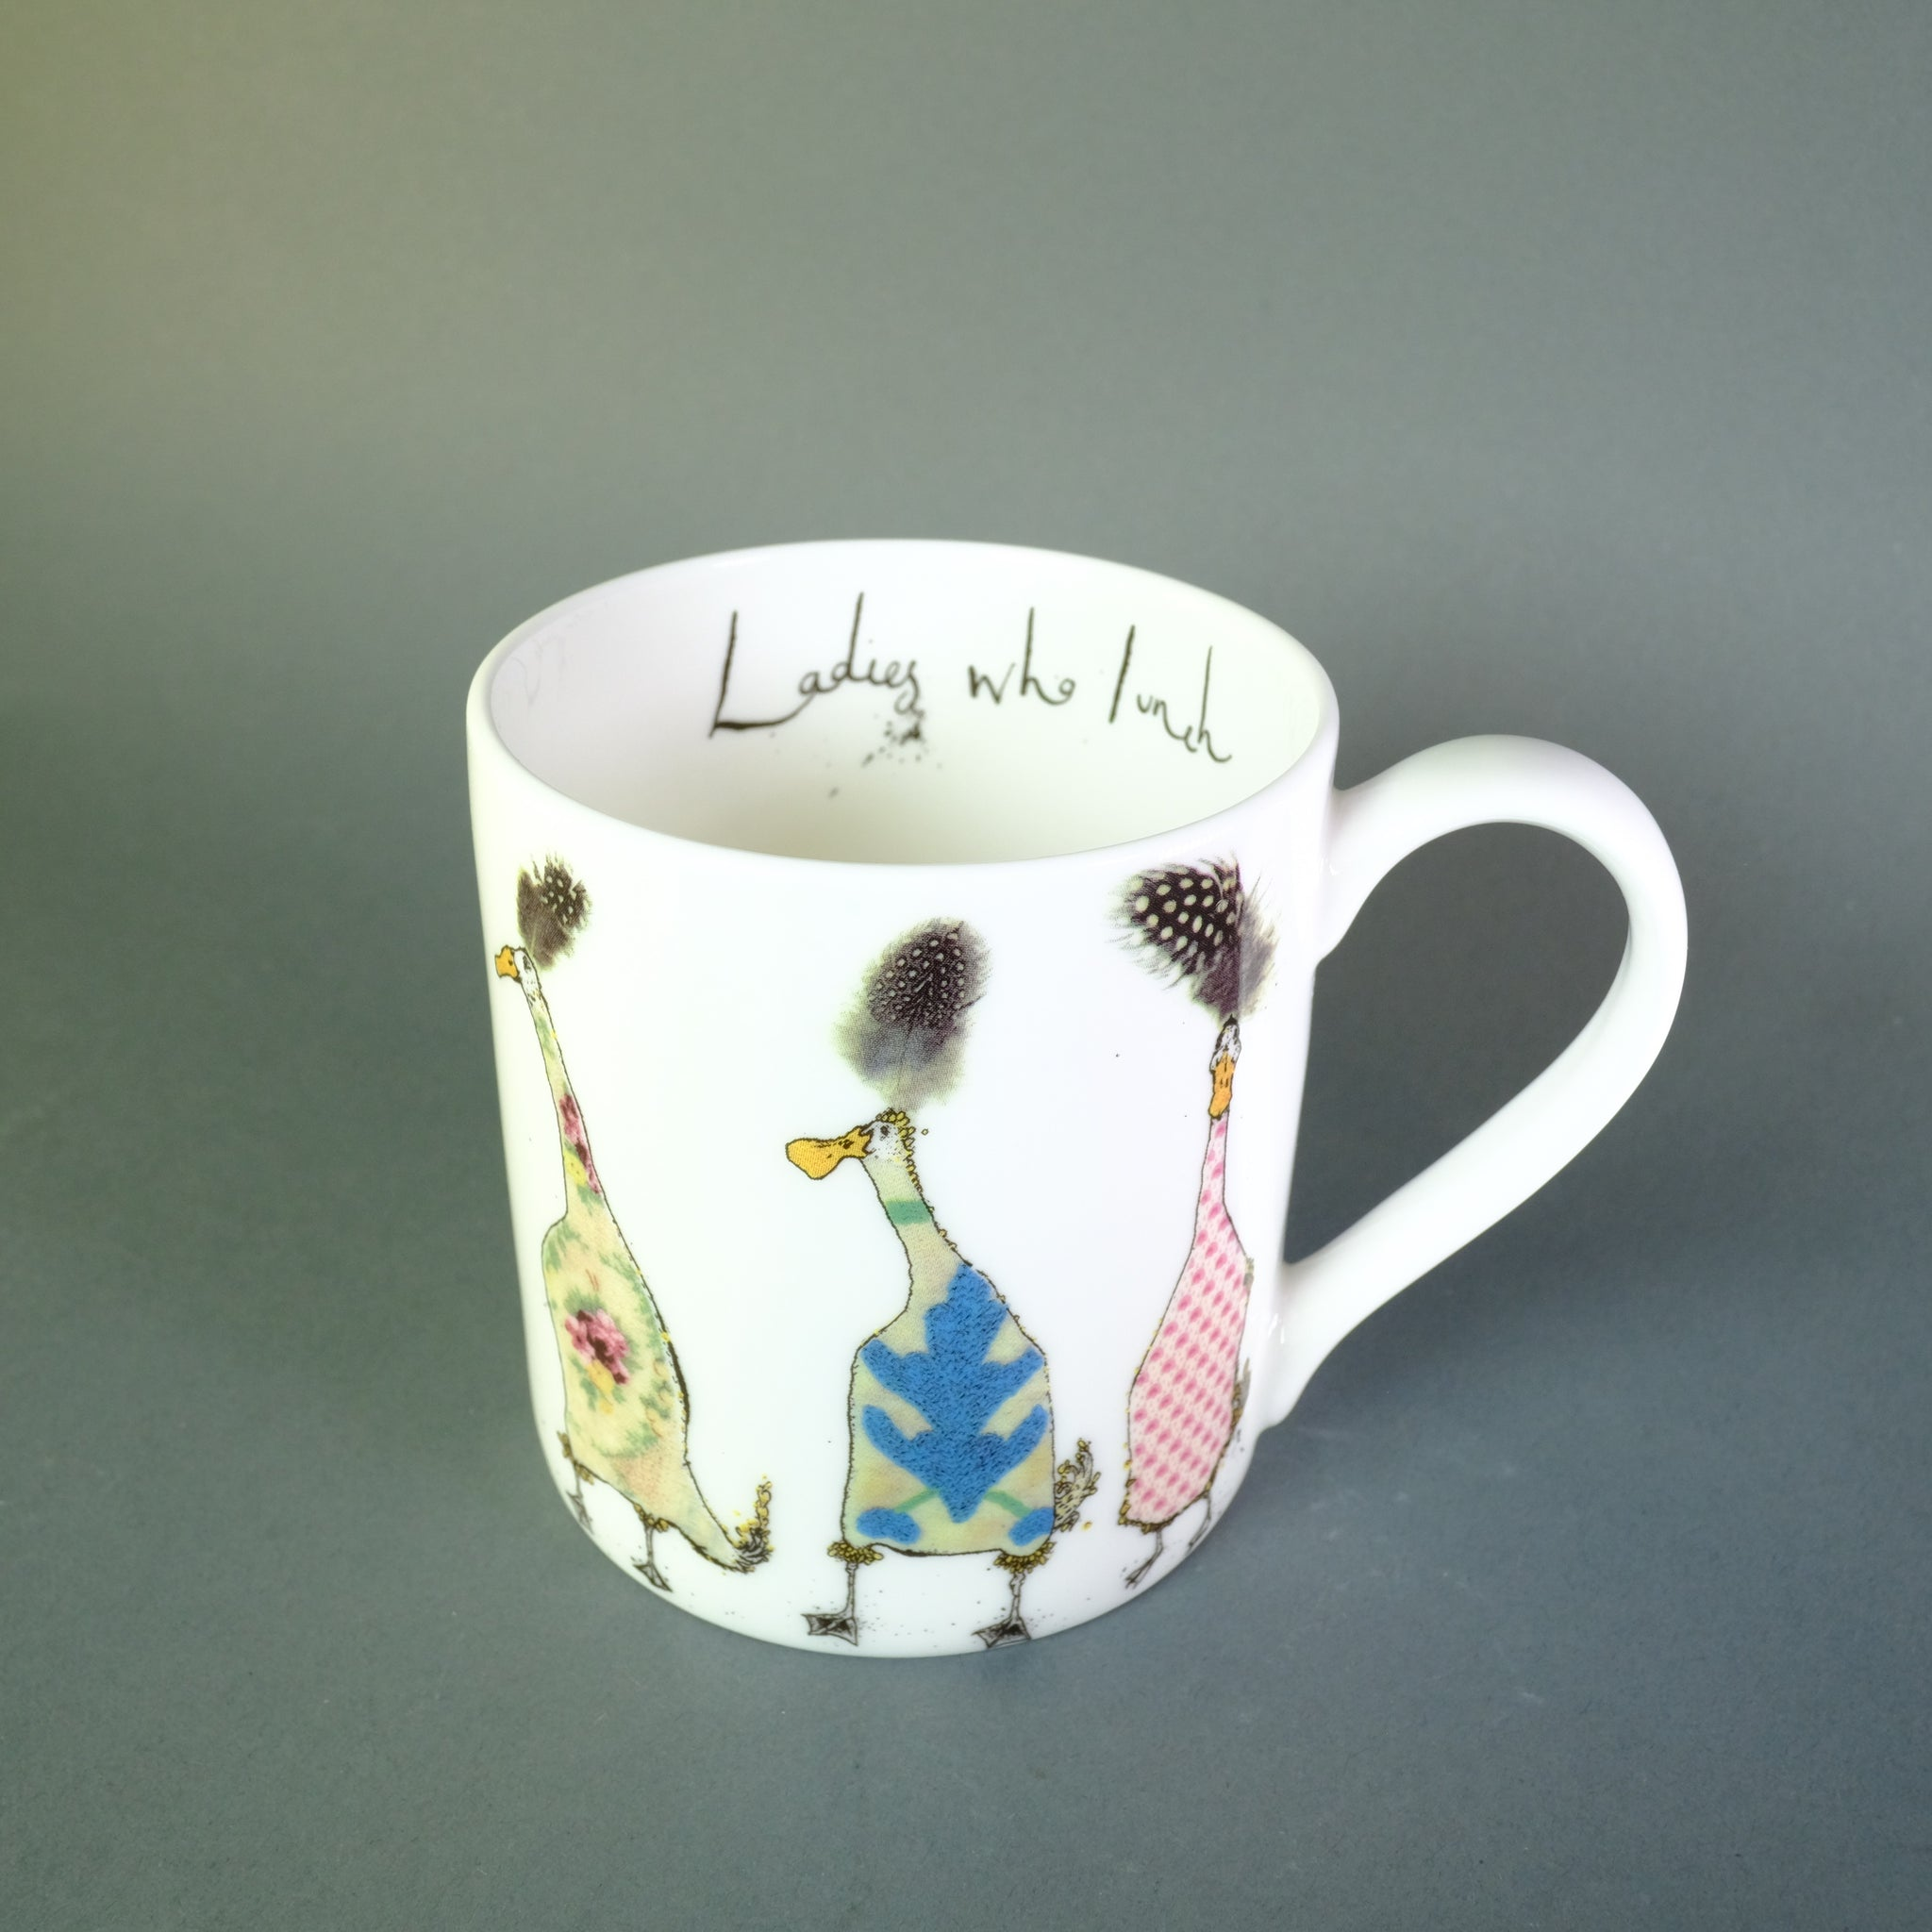 Anna Wright 'Ladies who Lunch' Bone China Mug.